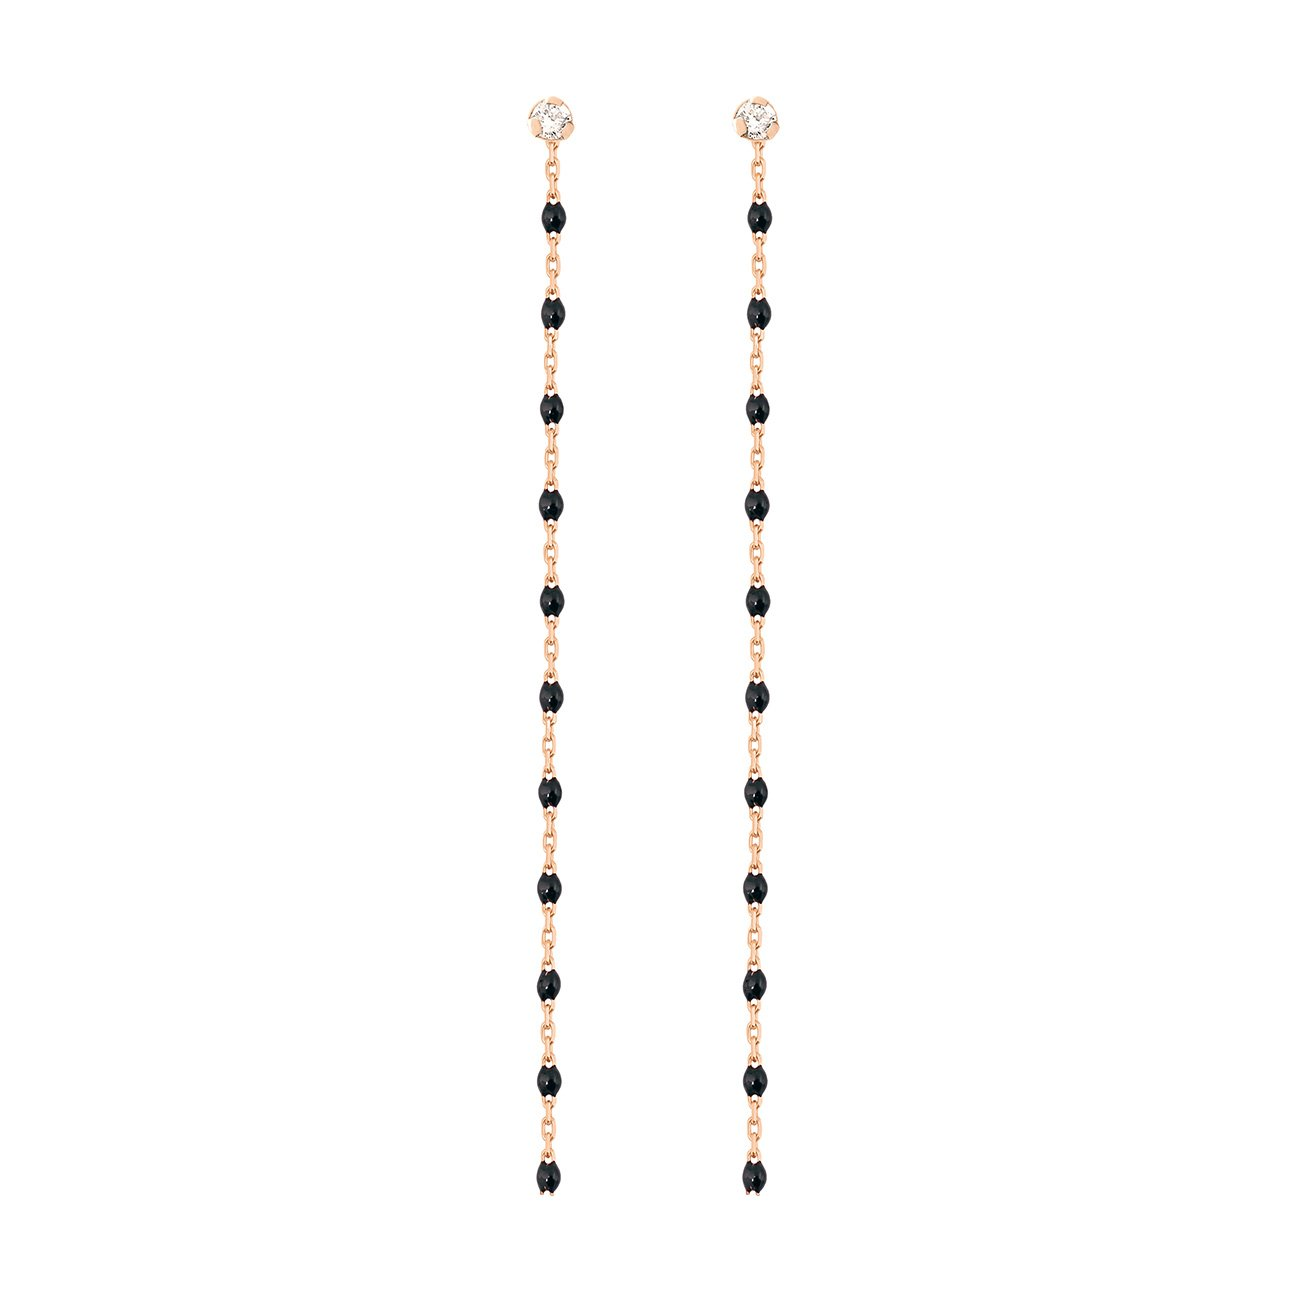 Gigi Clozeau - Mini Gigi Party Black diamonds earrings, Rose Gold